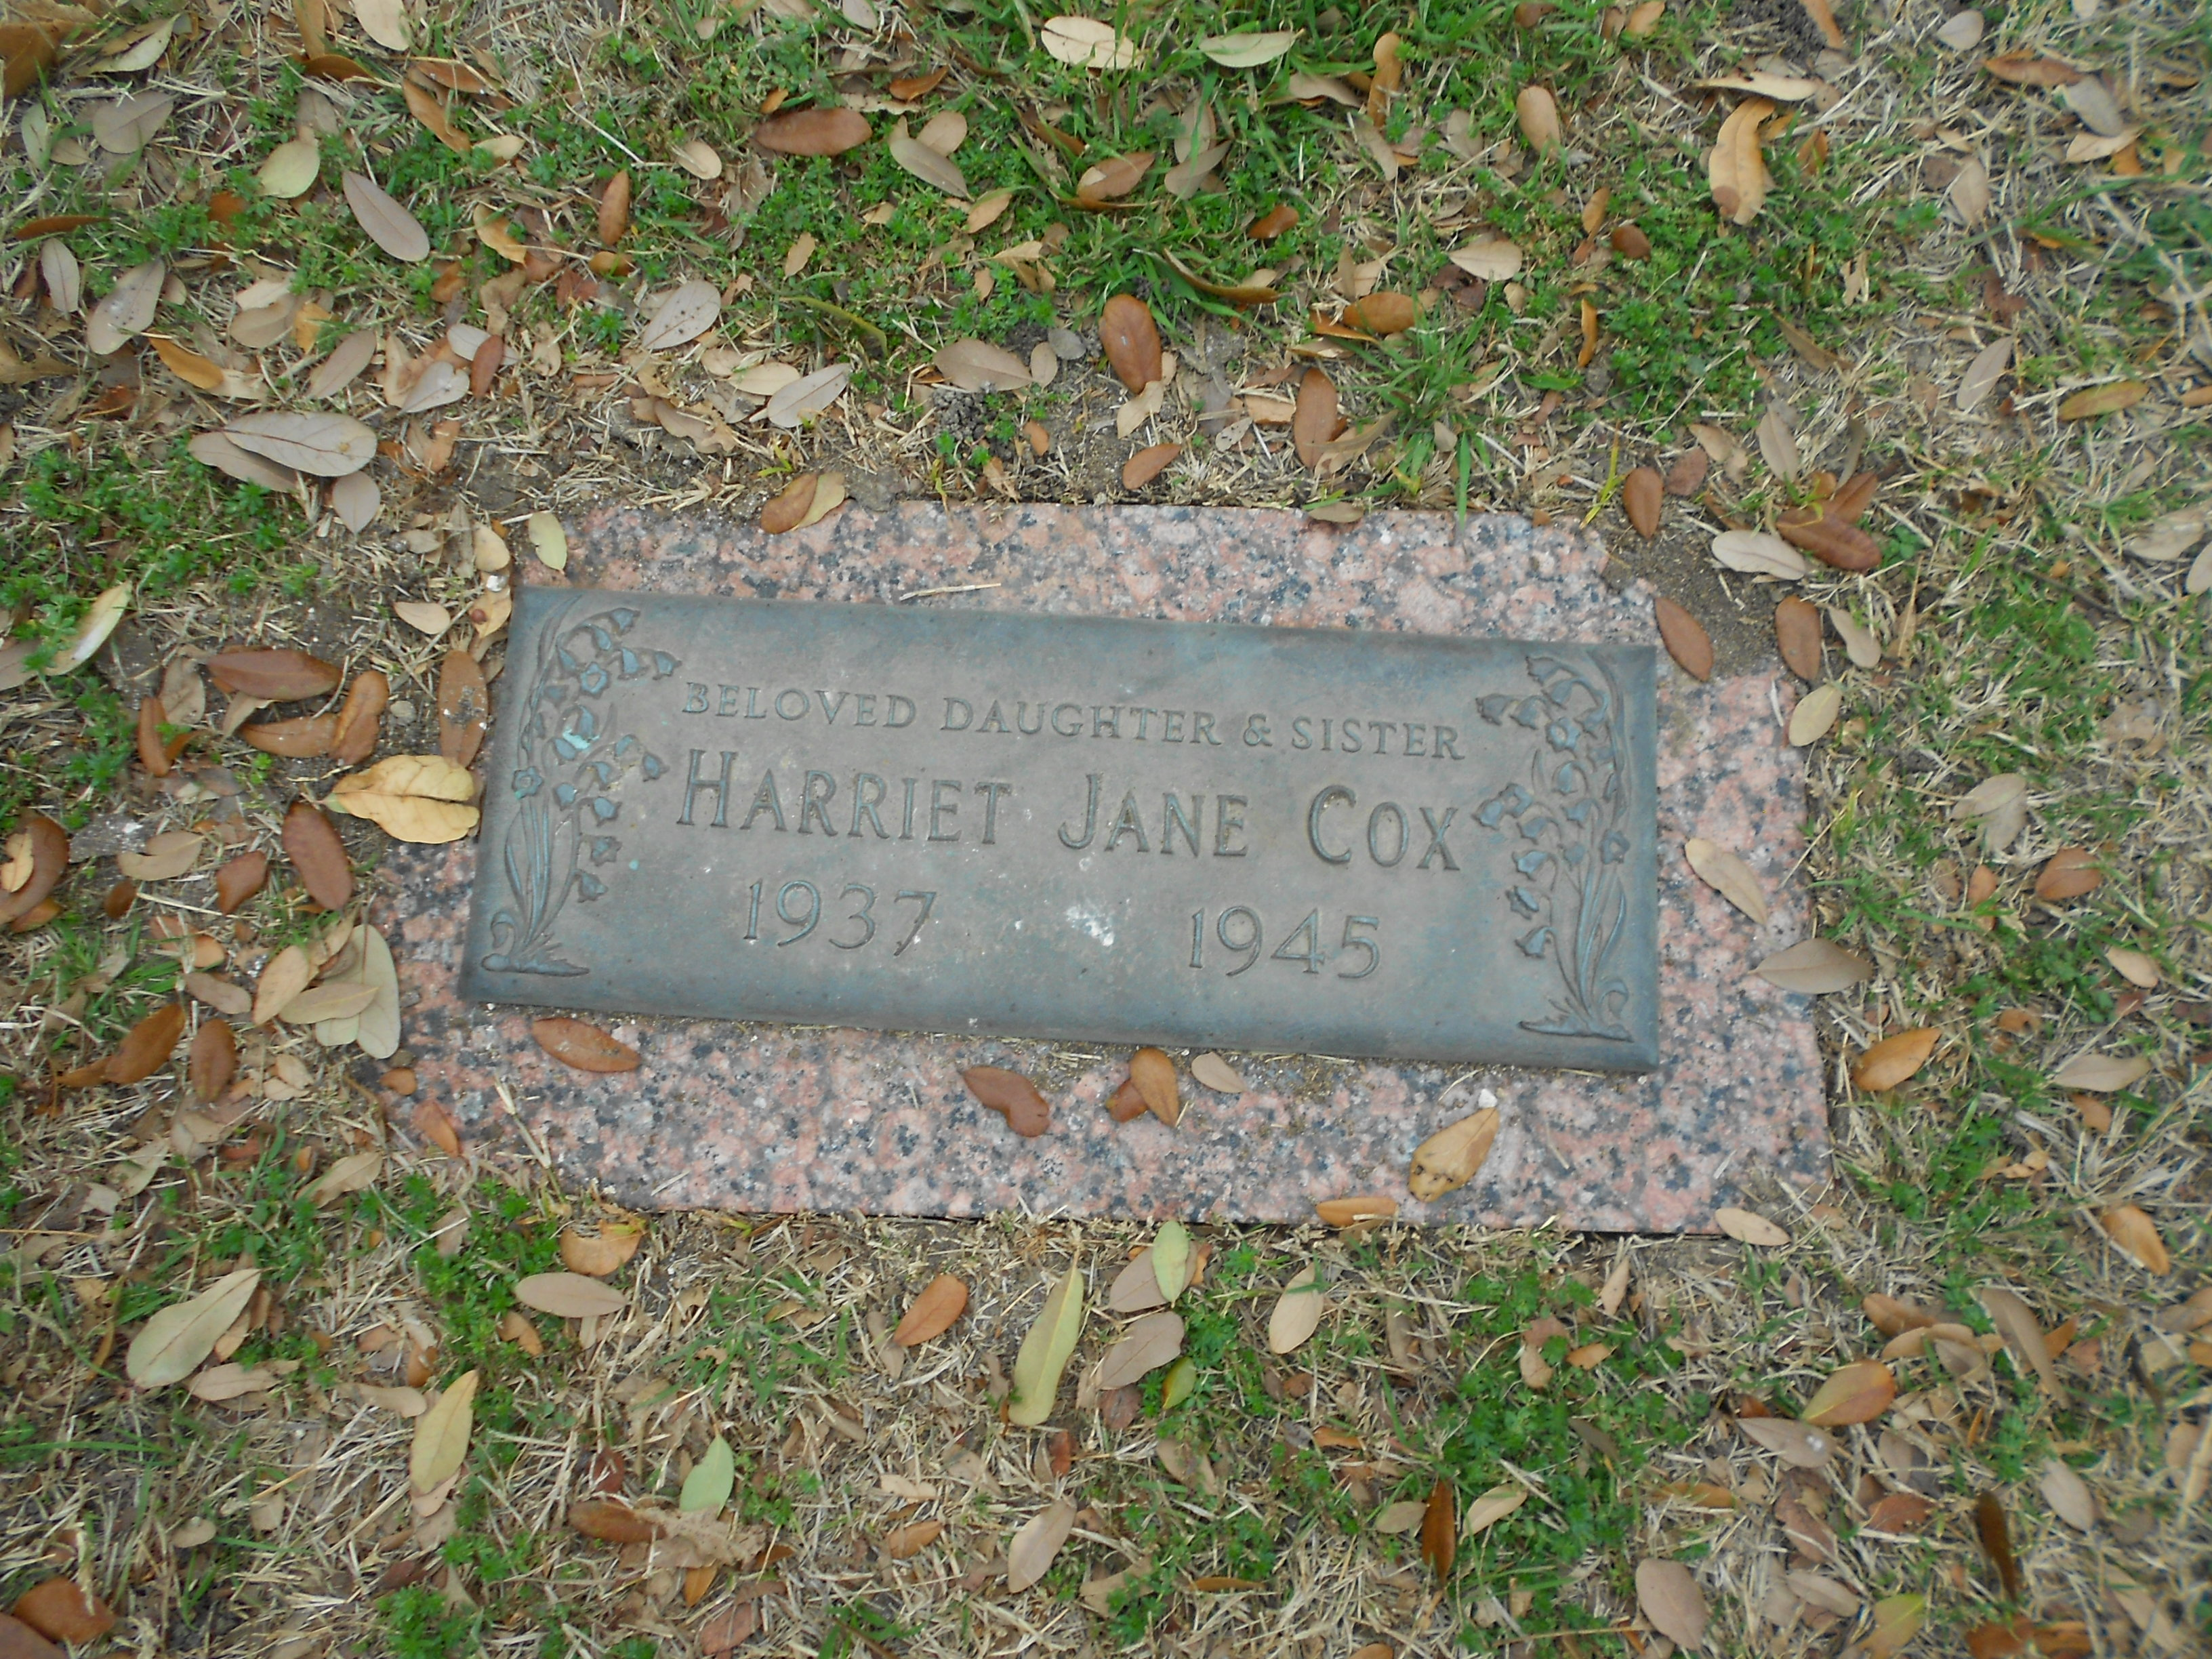 Harriet Jane Cox